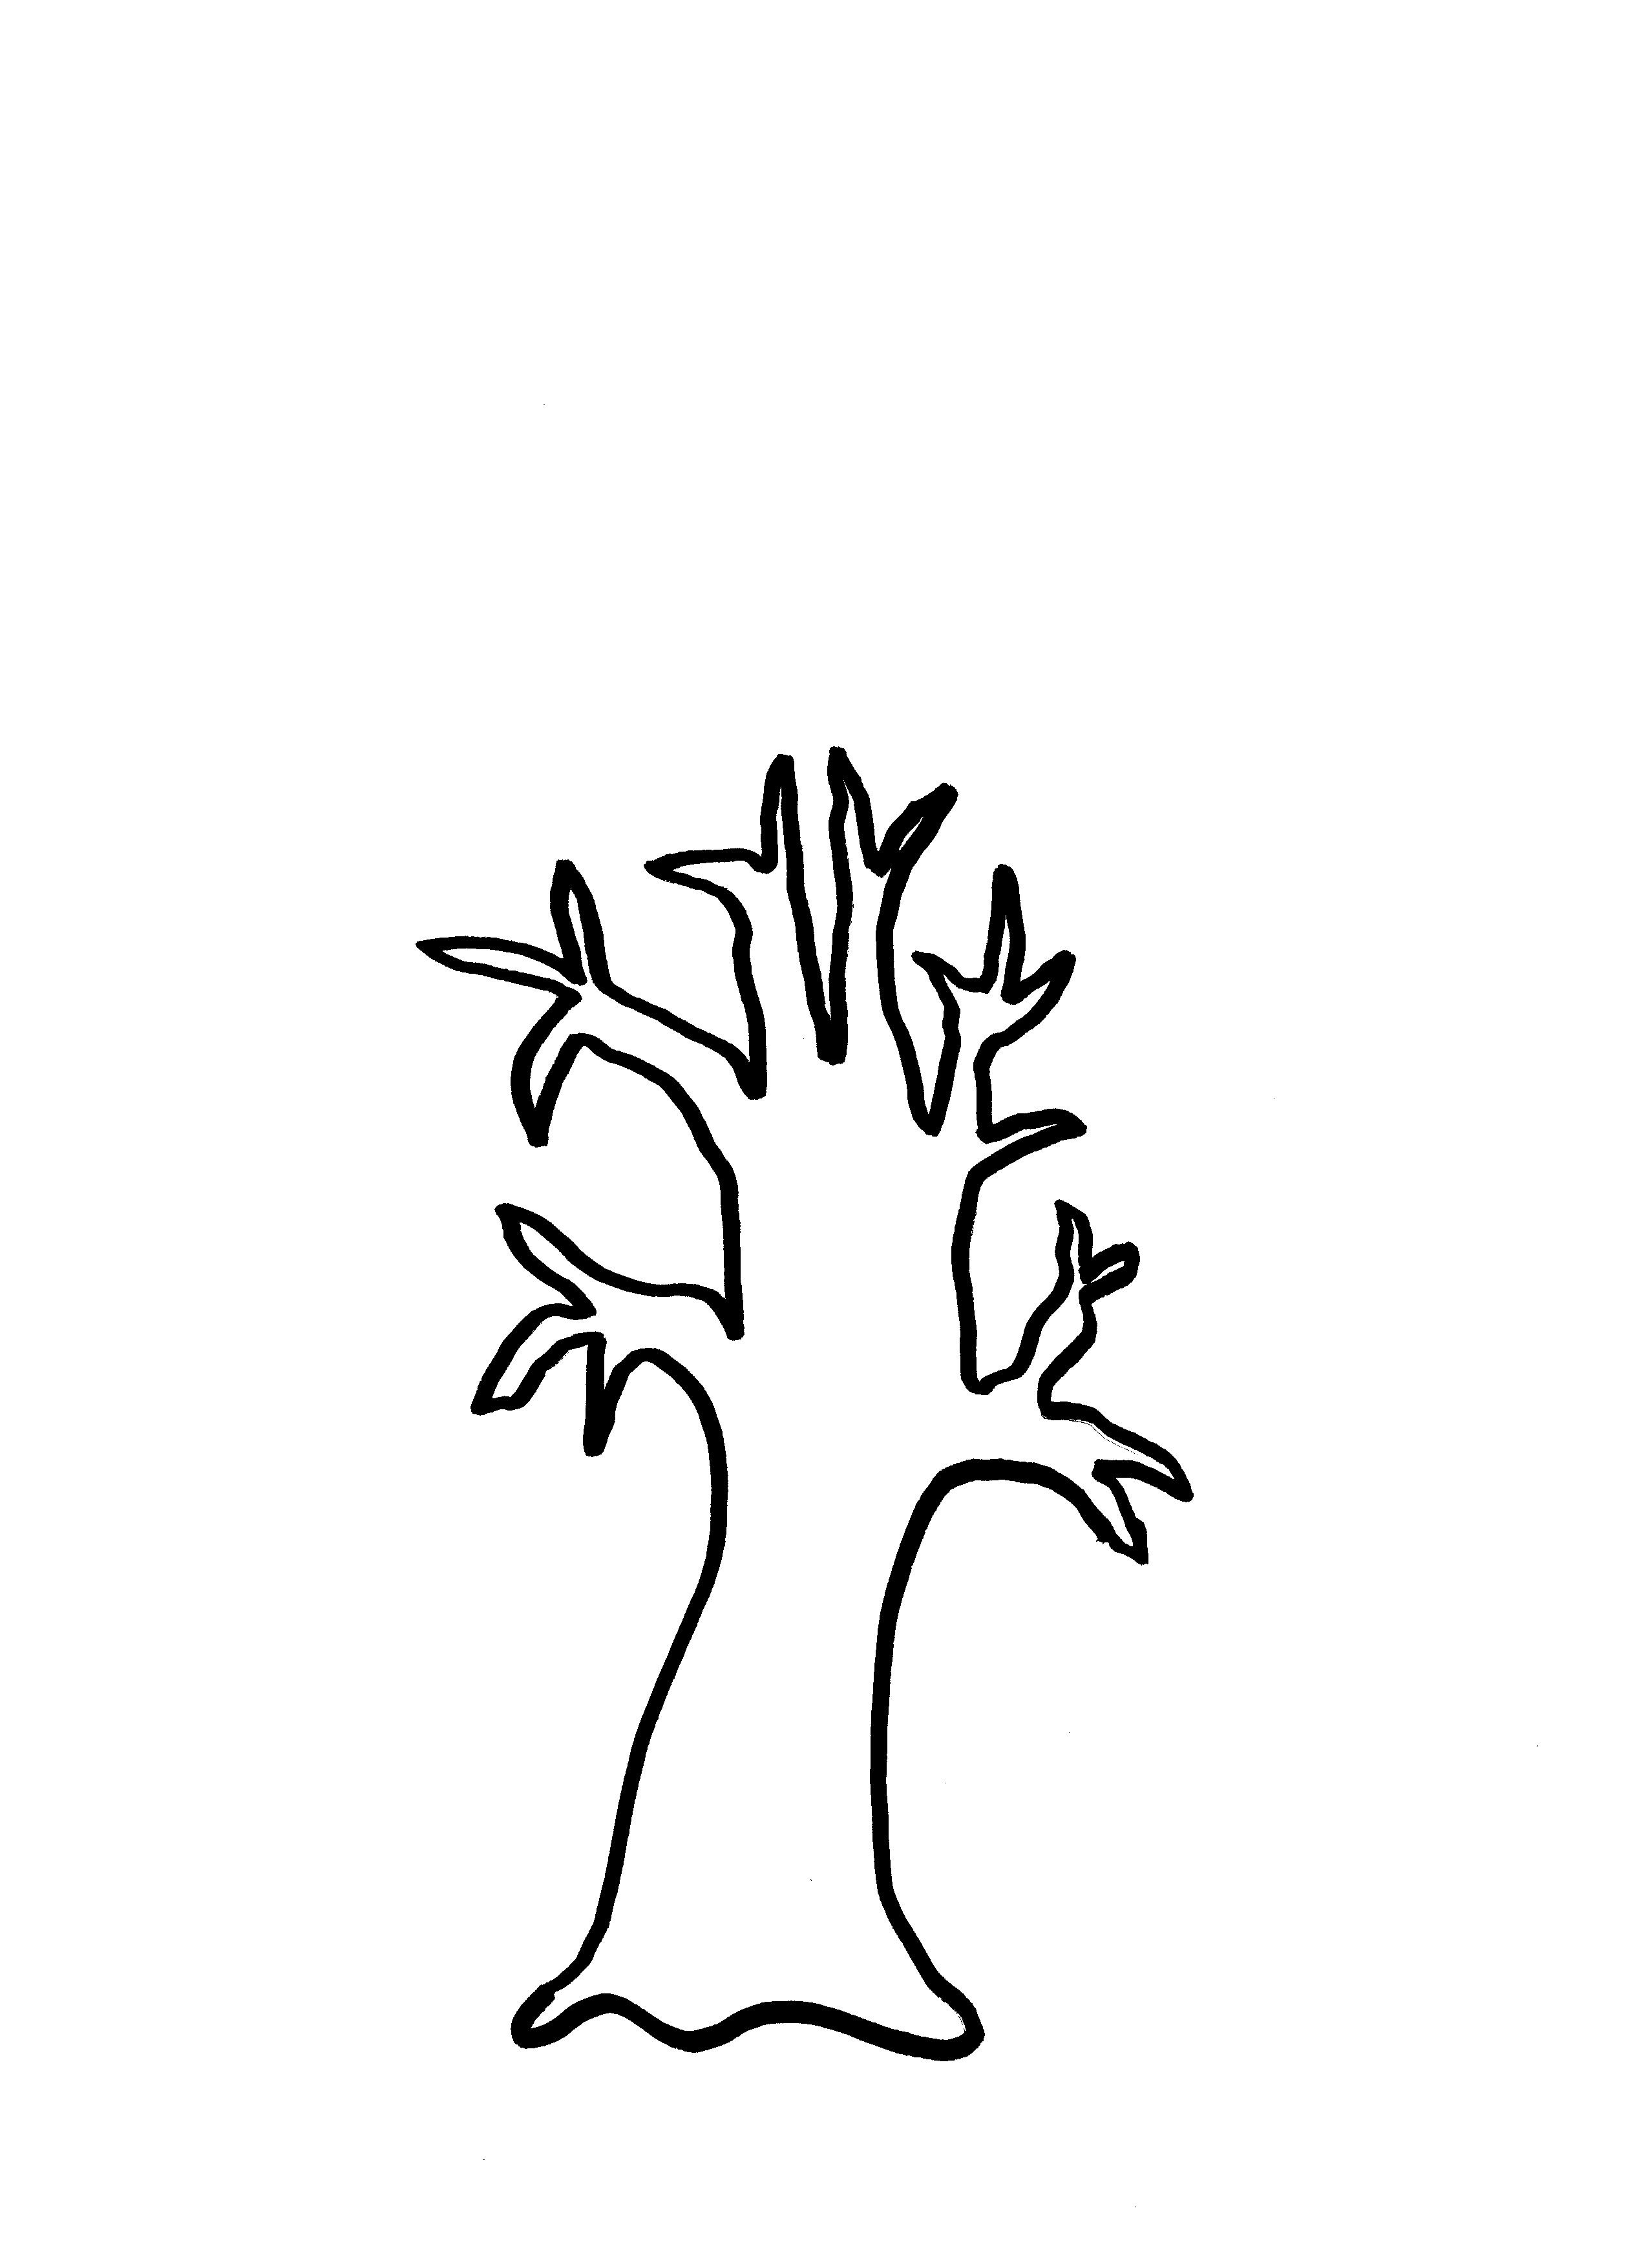 Free Bare Tree Template, Download Free Clip Art, Free Clip Art On - Free Printable Tree Template